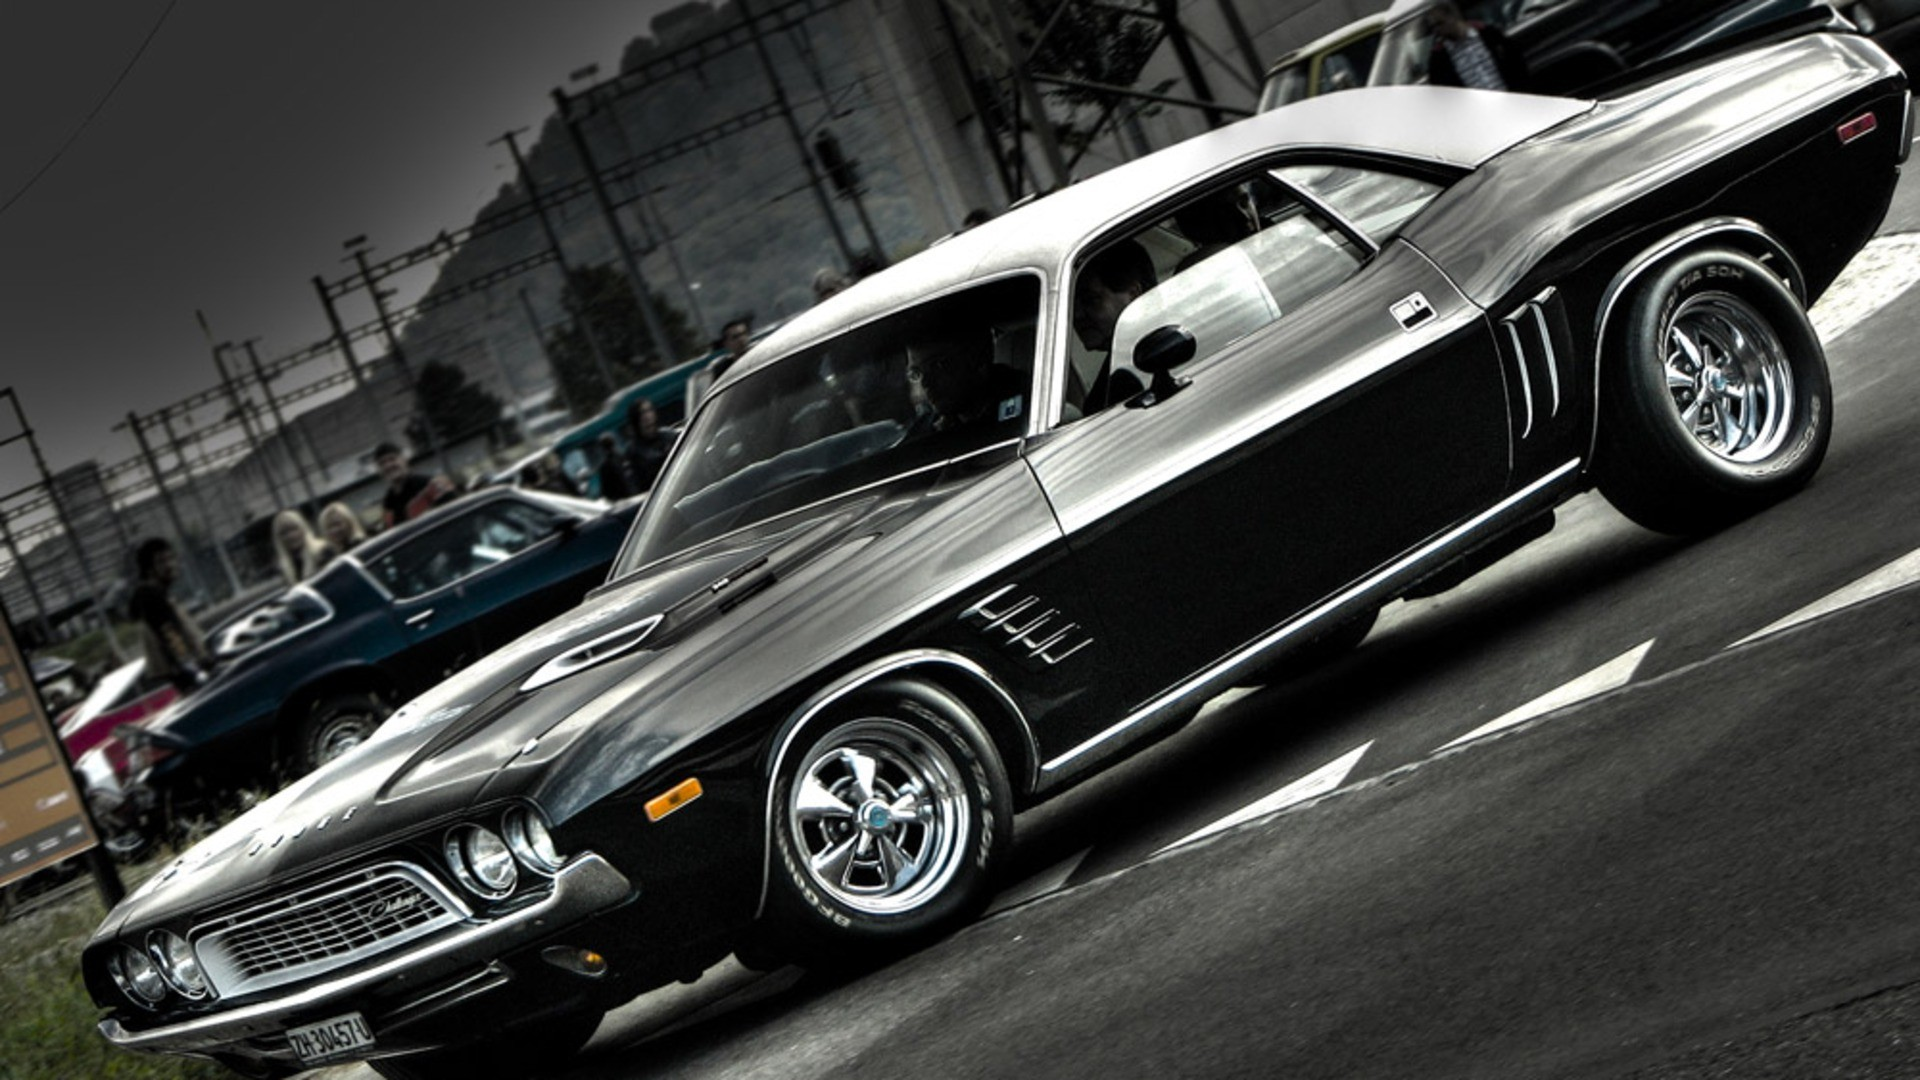 1920x1080 Images Of American Muscle Cars. american muscle cars wallpaper